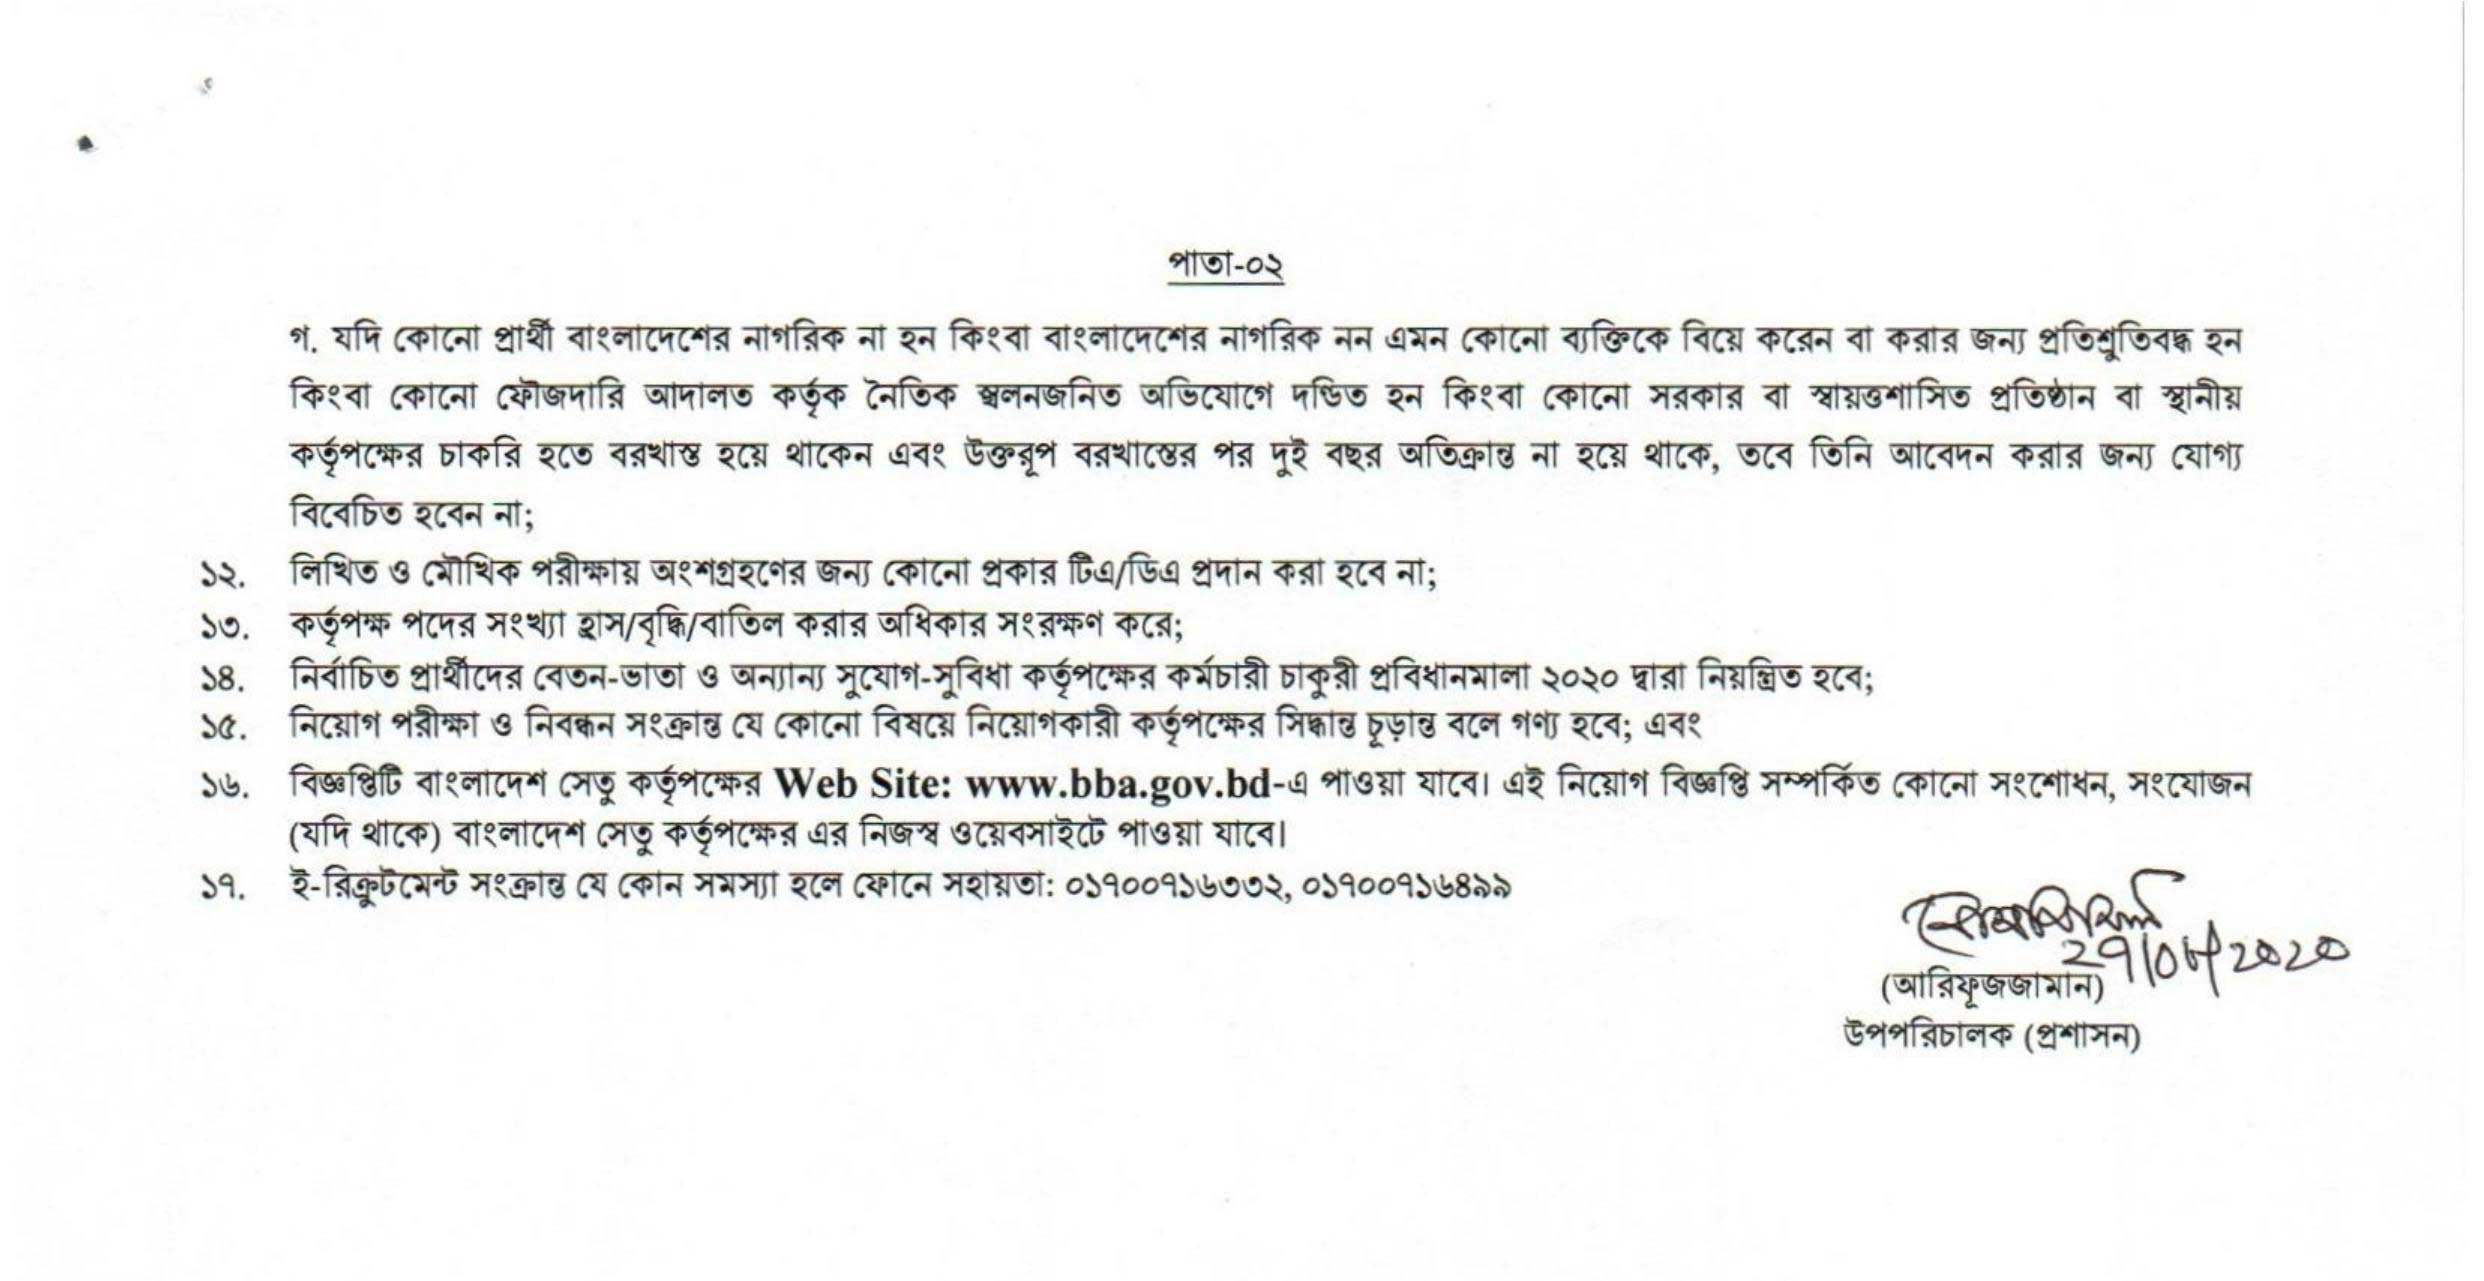 Bangladesh Bridge Authority Job Circular 2020 3